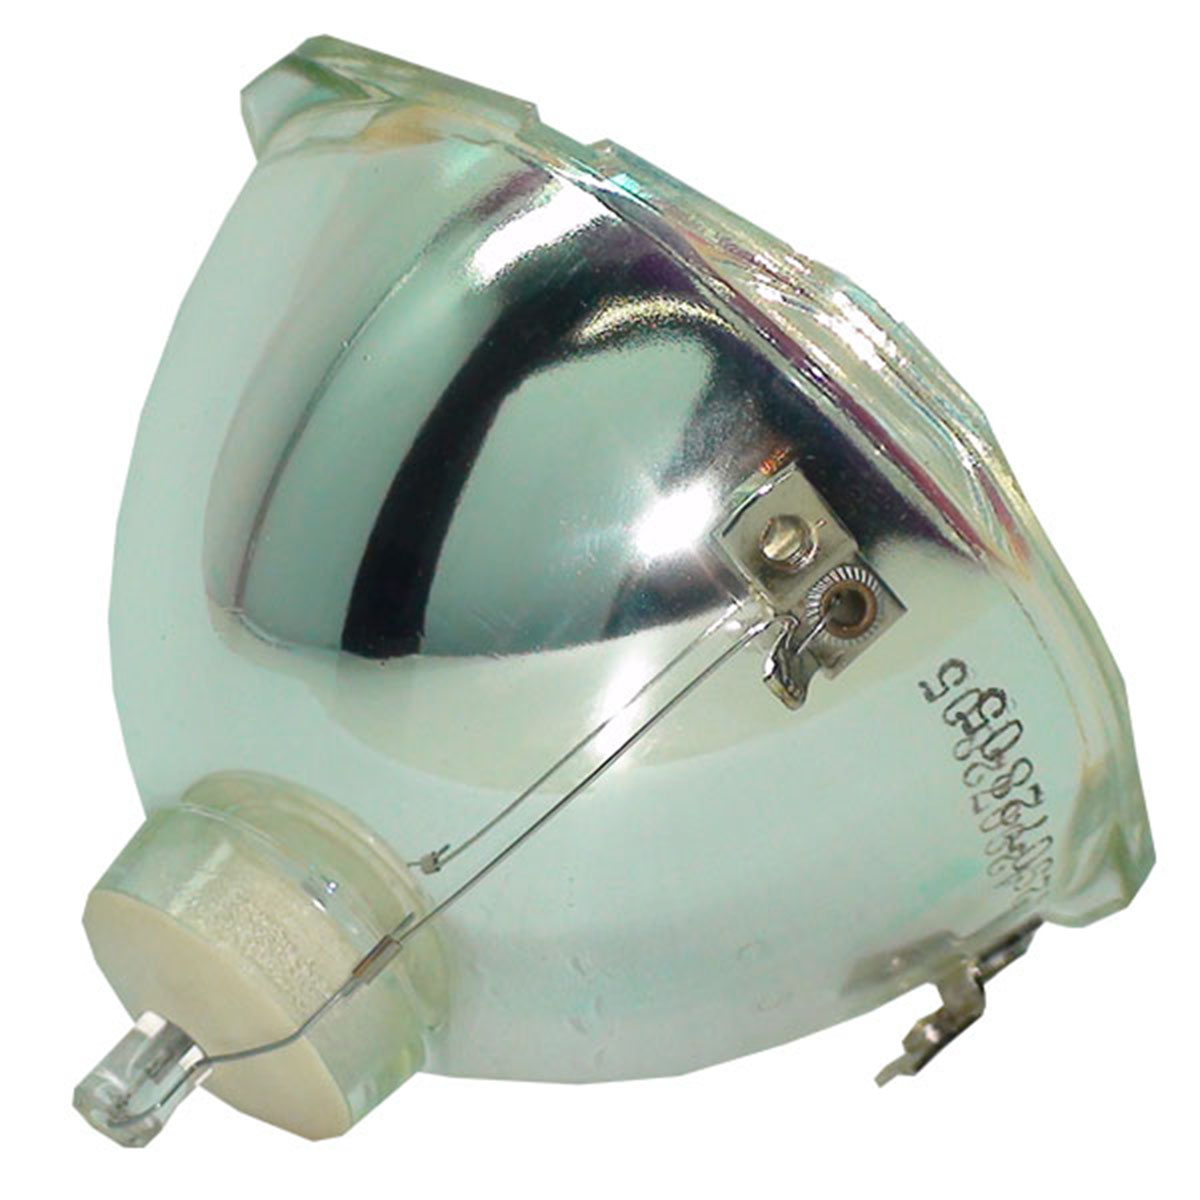 Lutema Platinum Bulb for HP mp4800 Projector (Lamp Only) - image 1 of 5